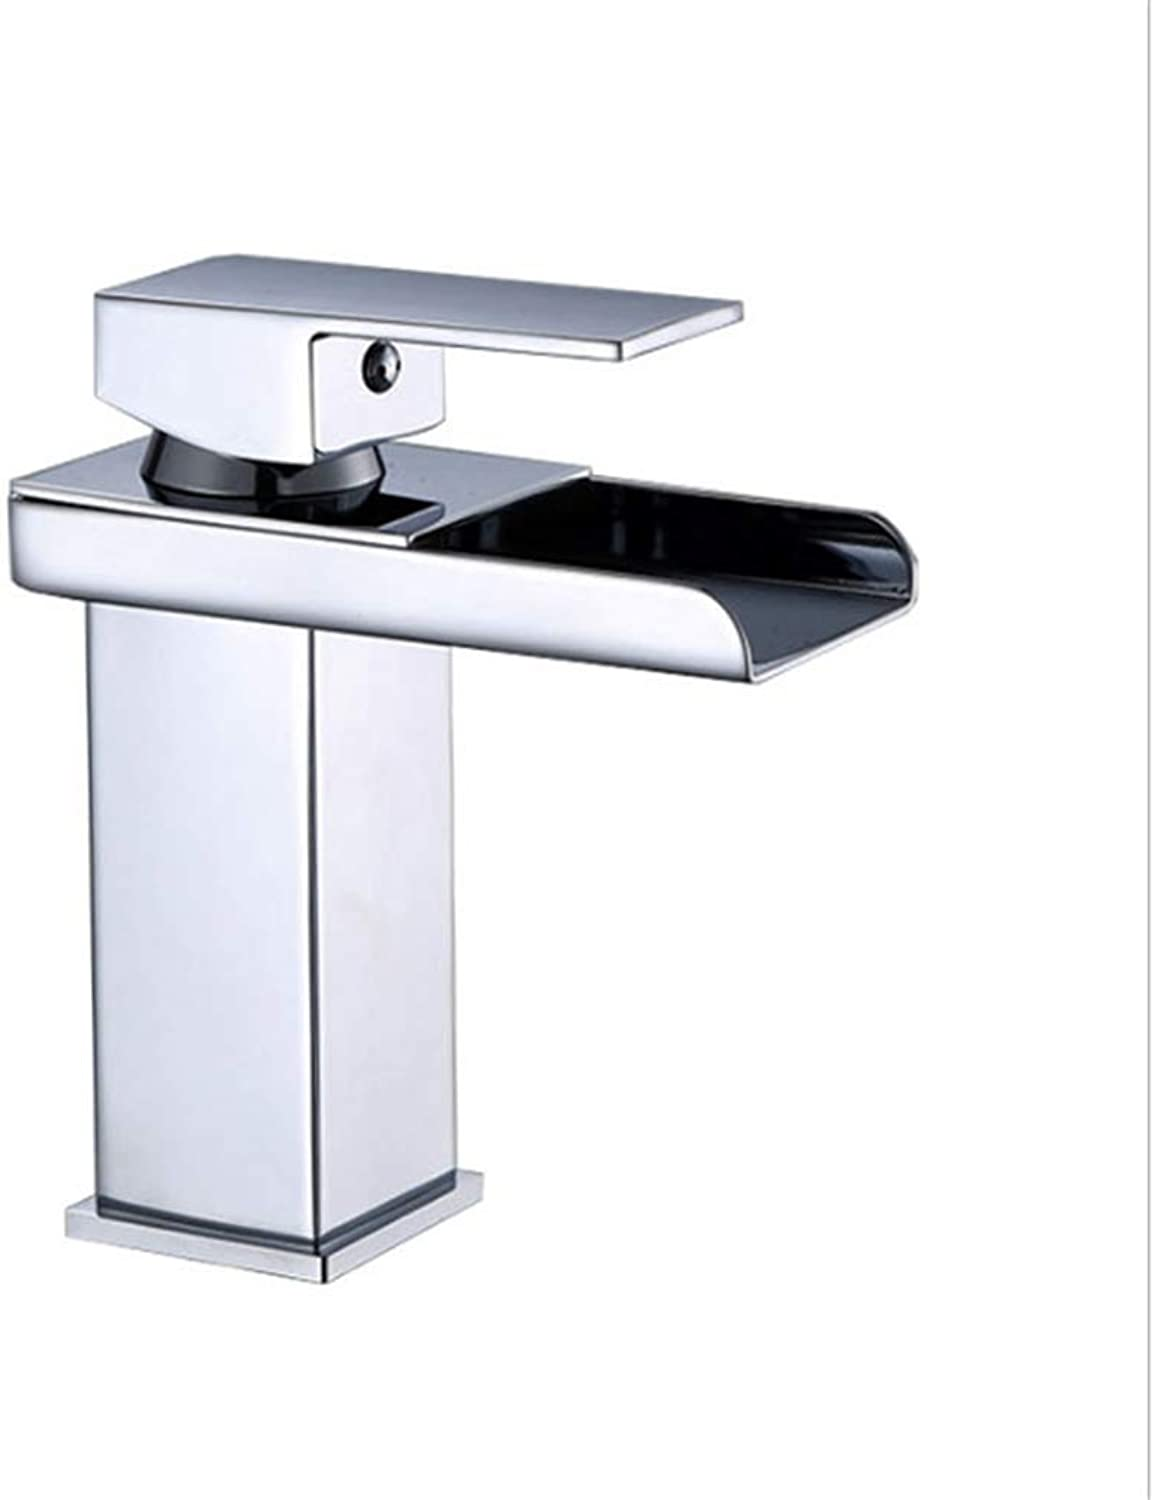 Kitchen Taps Faucet Modern Kitchen Sink Taps Stainless Steelcopper Single-Hole Basin Faucet Platform Basin Faucet Hand-Washing Mixing Faucet